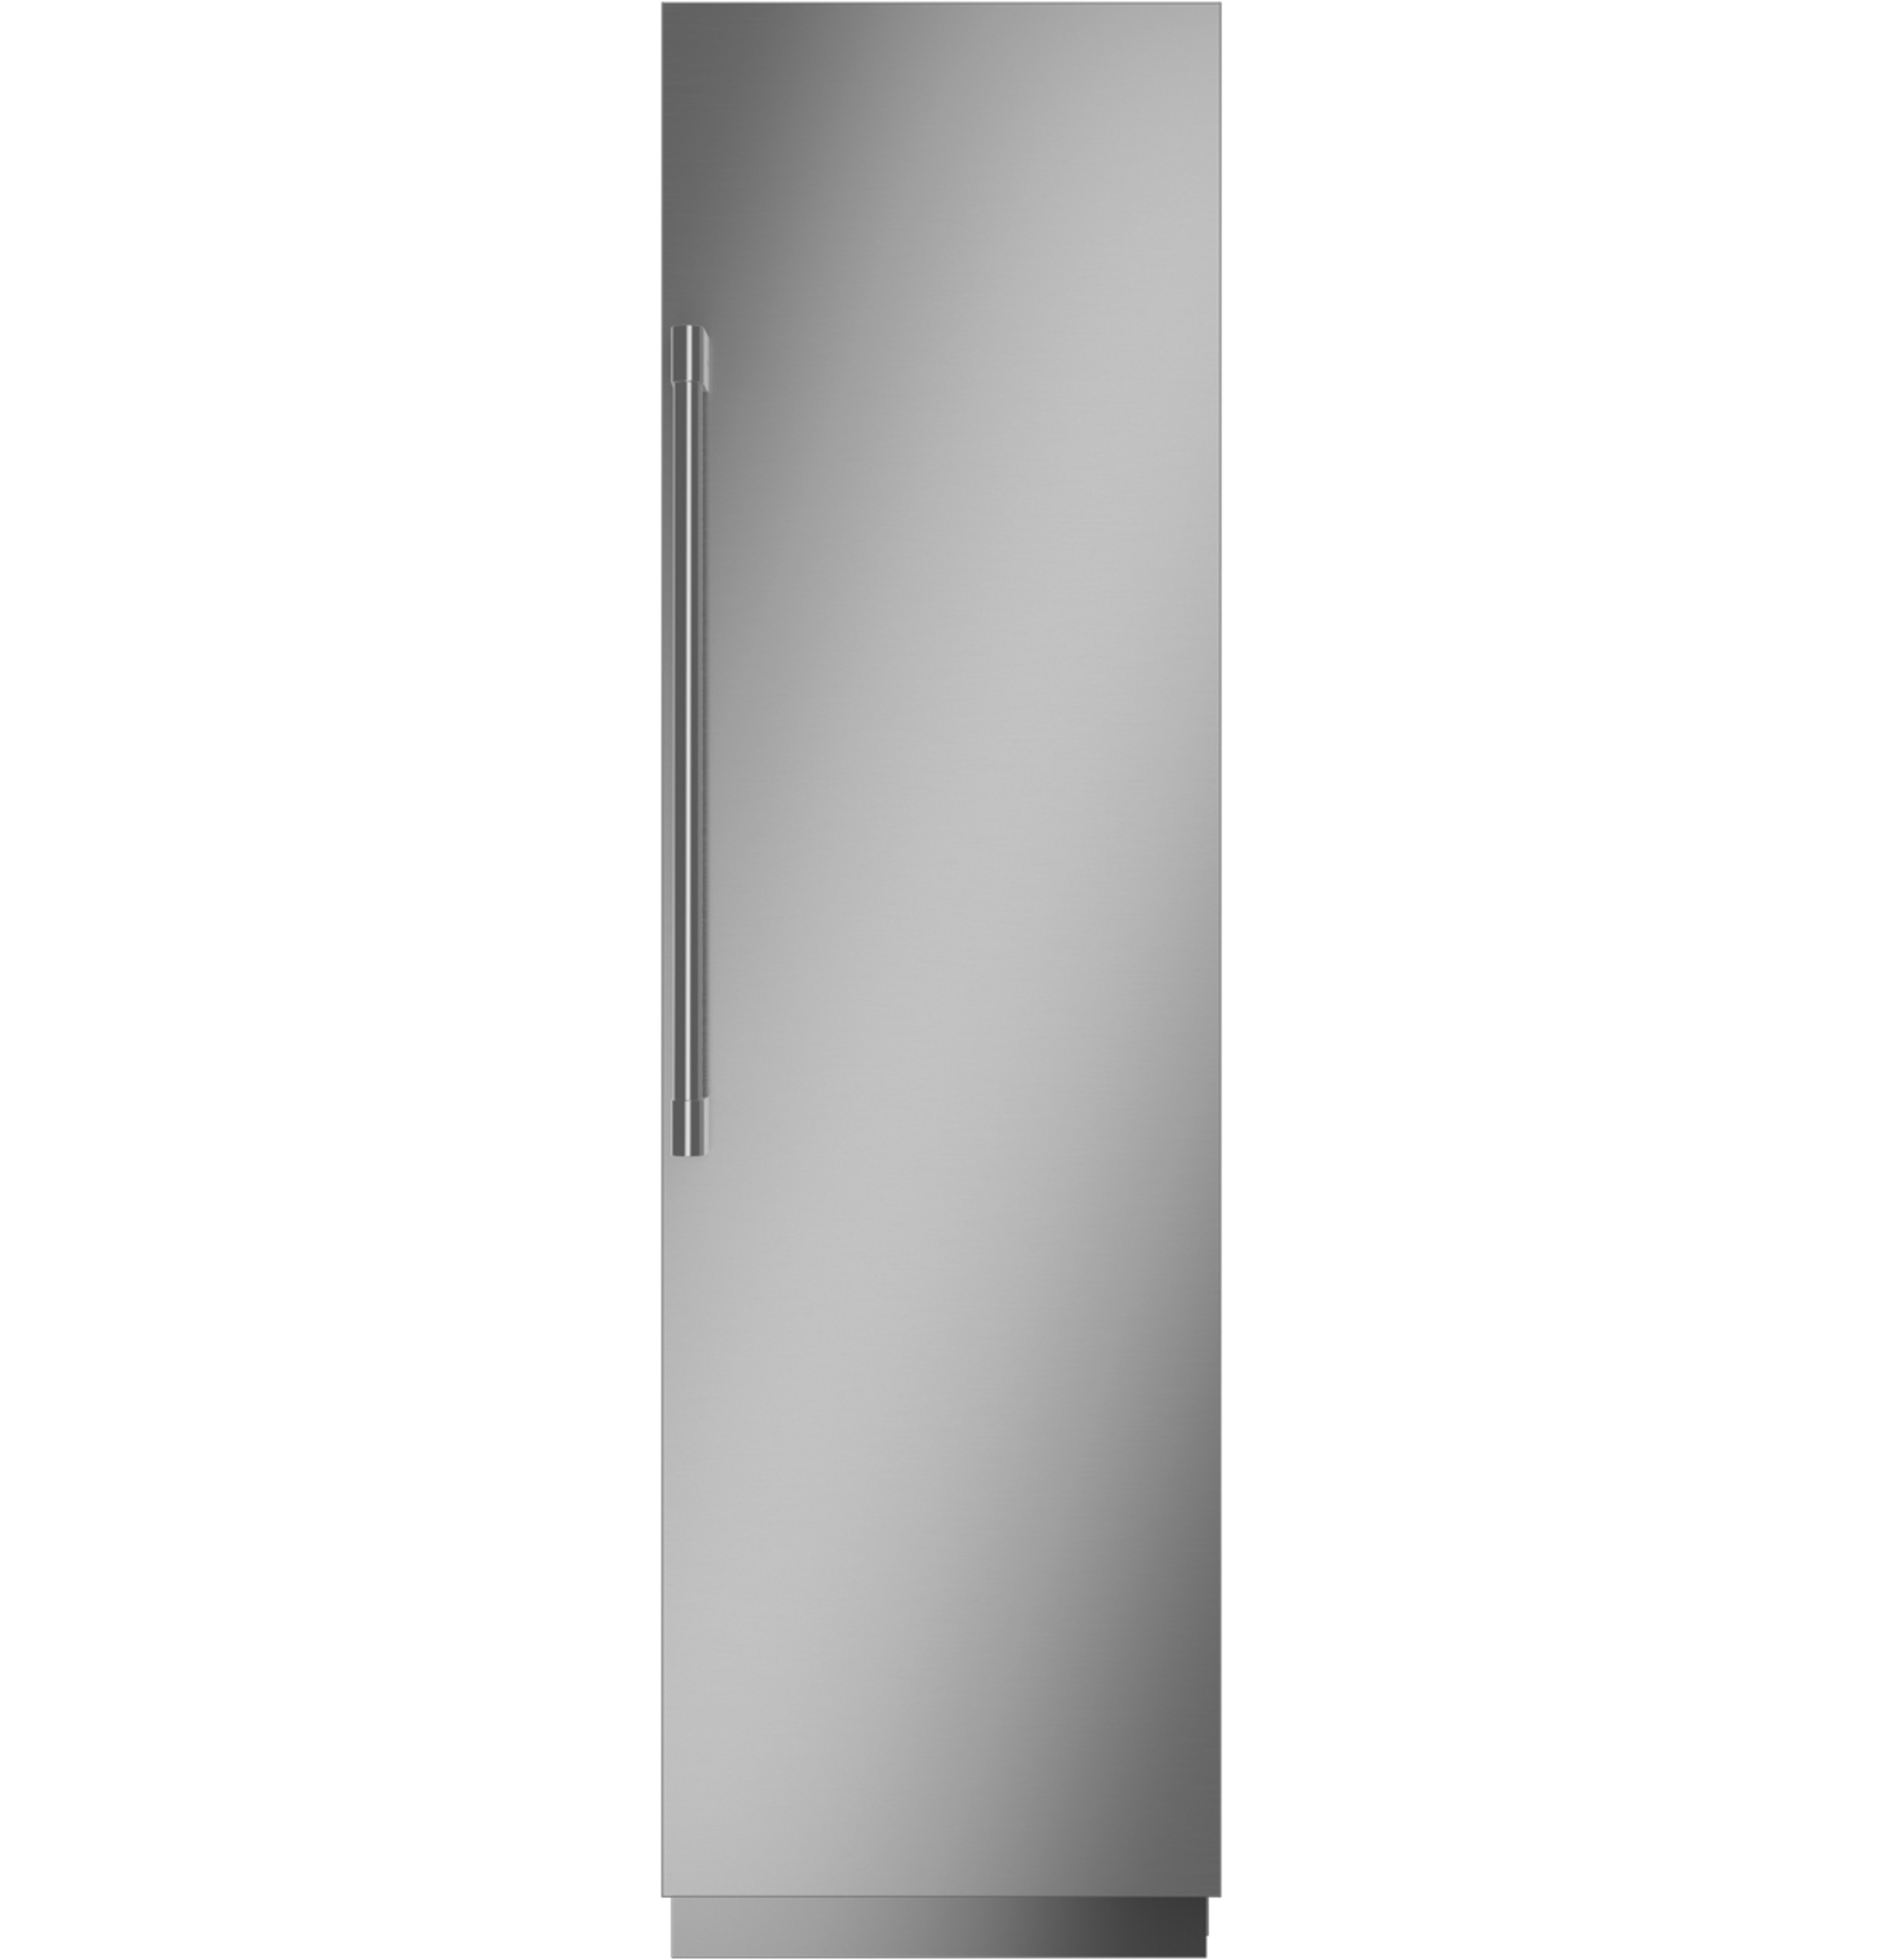 "Monogram Monogram 24"" Integrated Column Refrigerator"